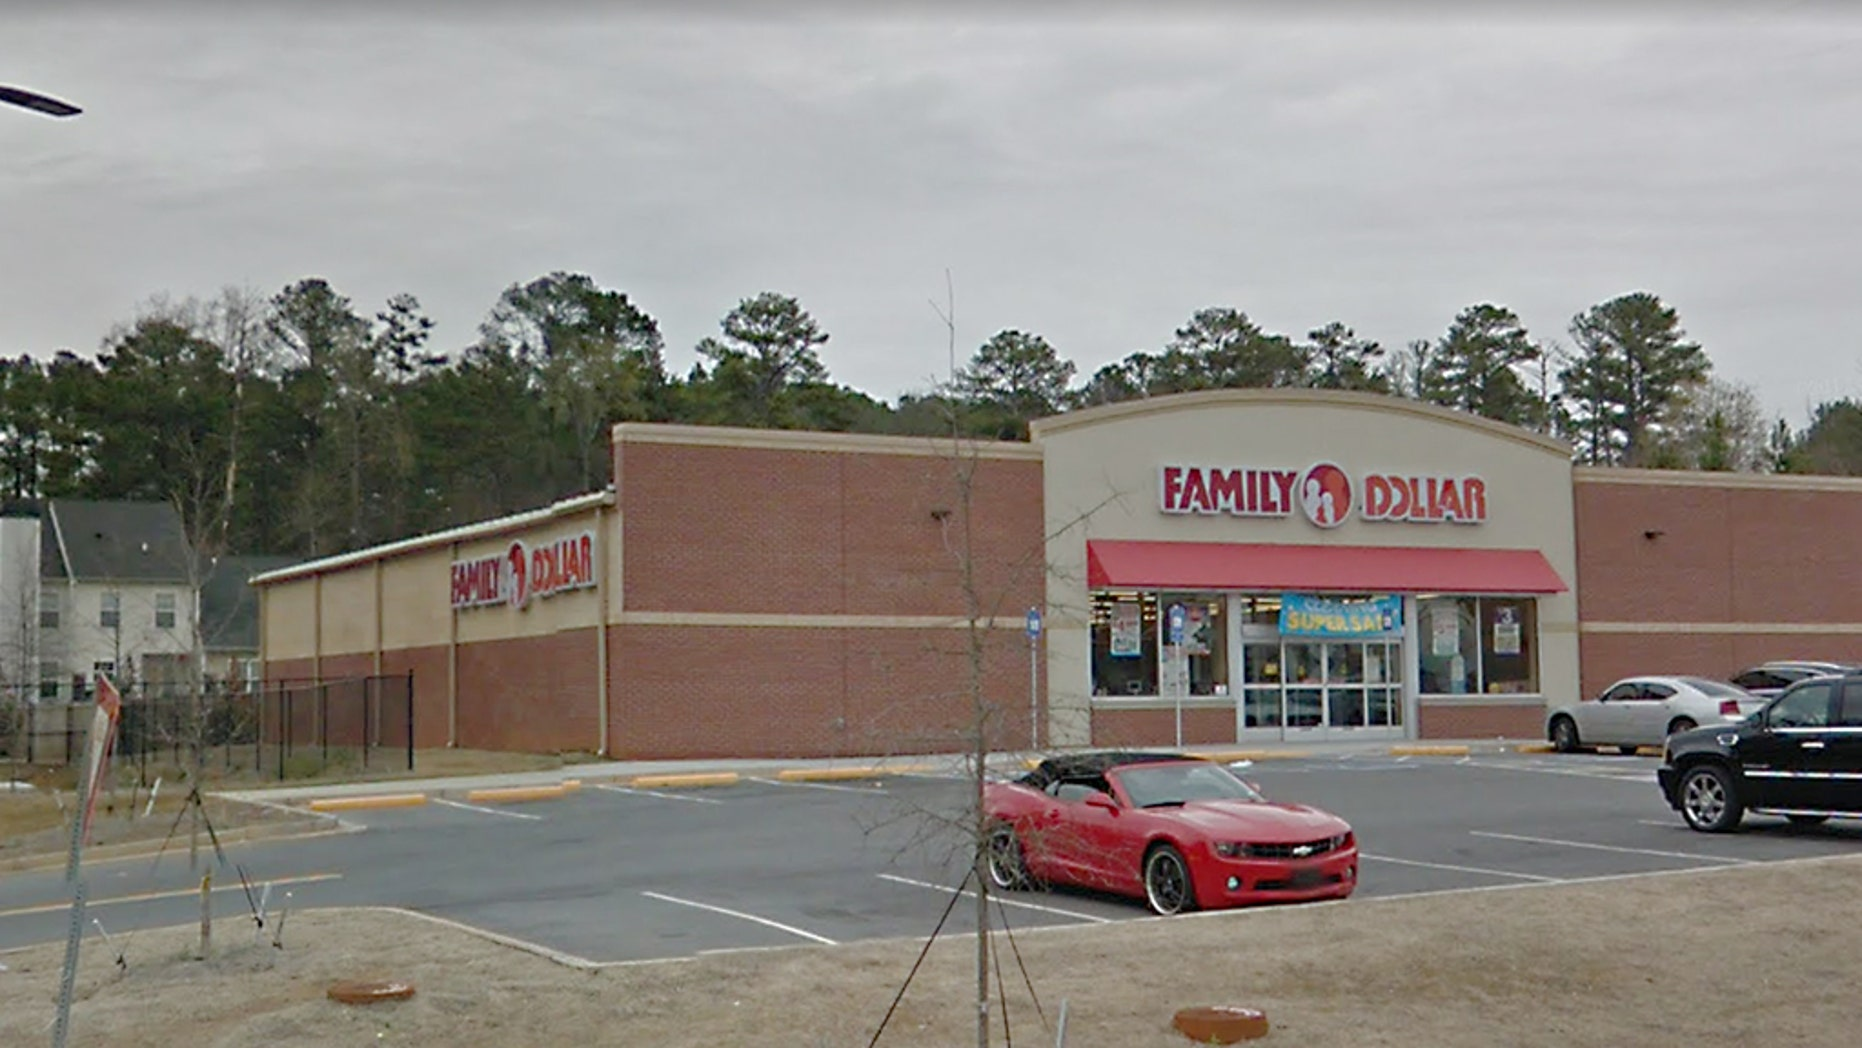 A Georgia man shot and killed a would-be robber in this Family Dollar store in Dekalb County on Tuesday morning, police said.